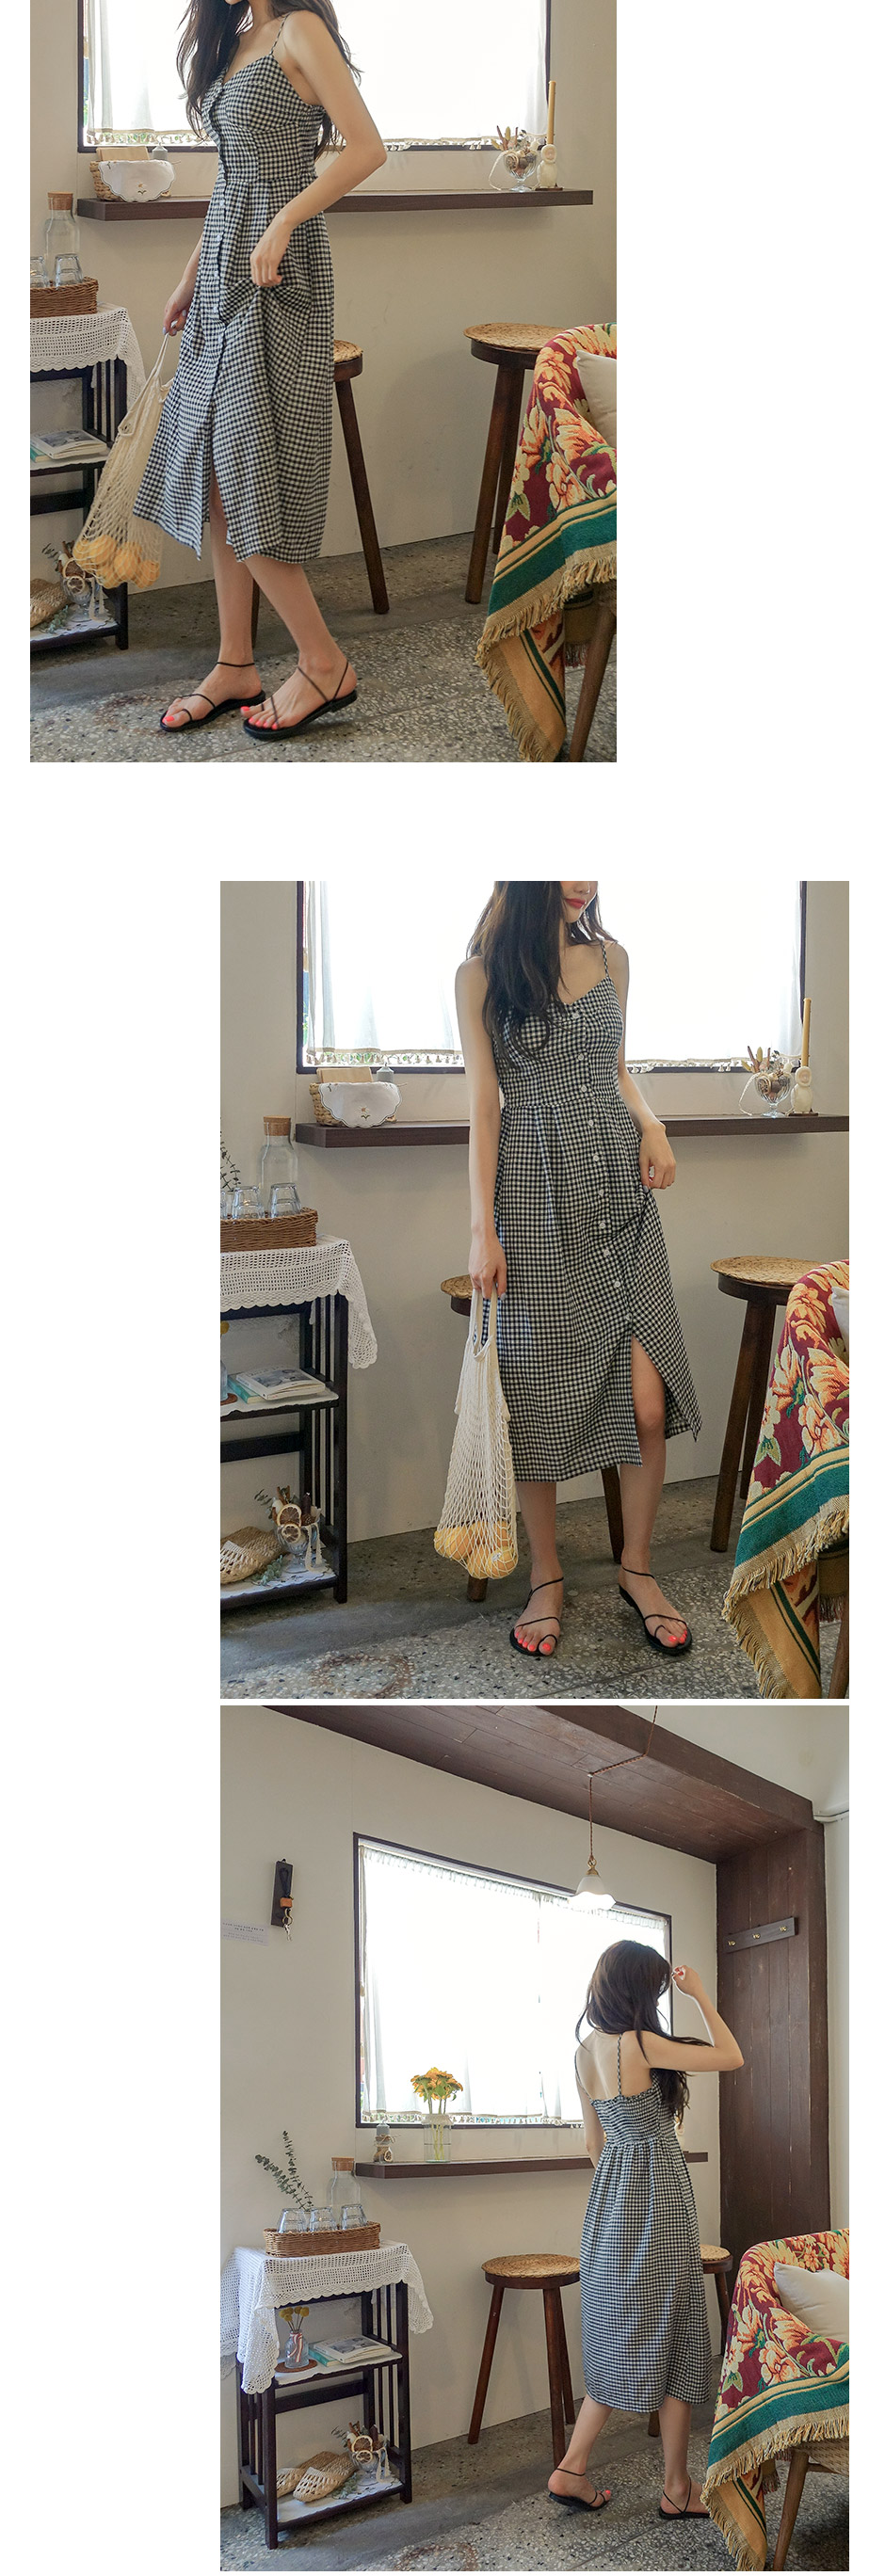 //cdn.nhanh.vn/cdn/store/29770/psCT/20180909/8968149/CHUU_Understand_Me_Checkered_Dress_(10).jpg